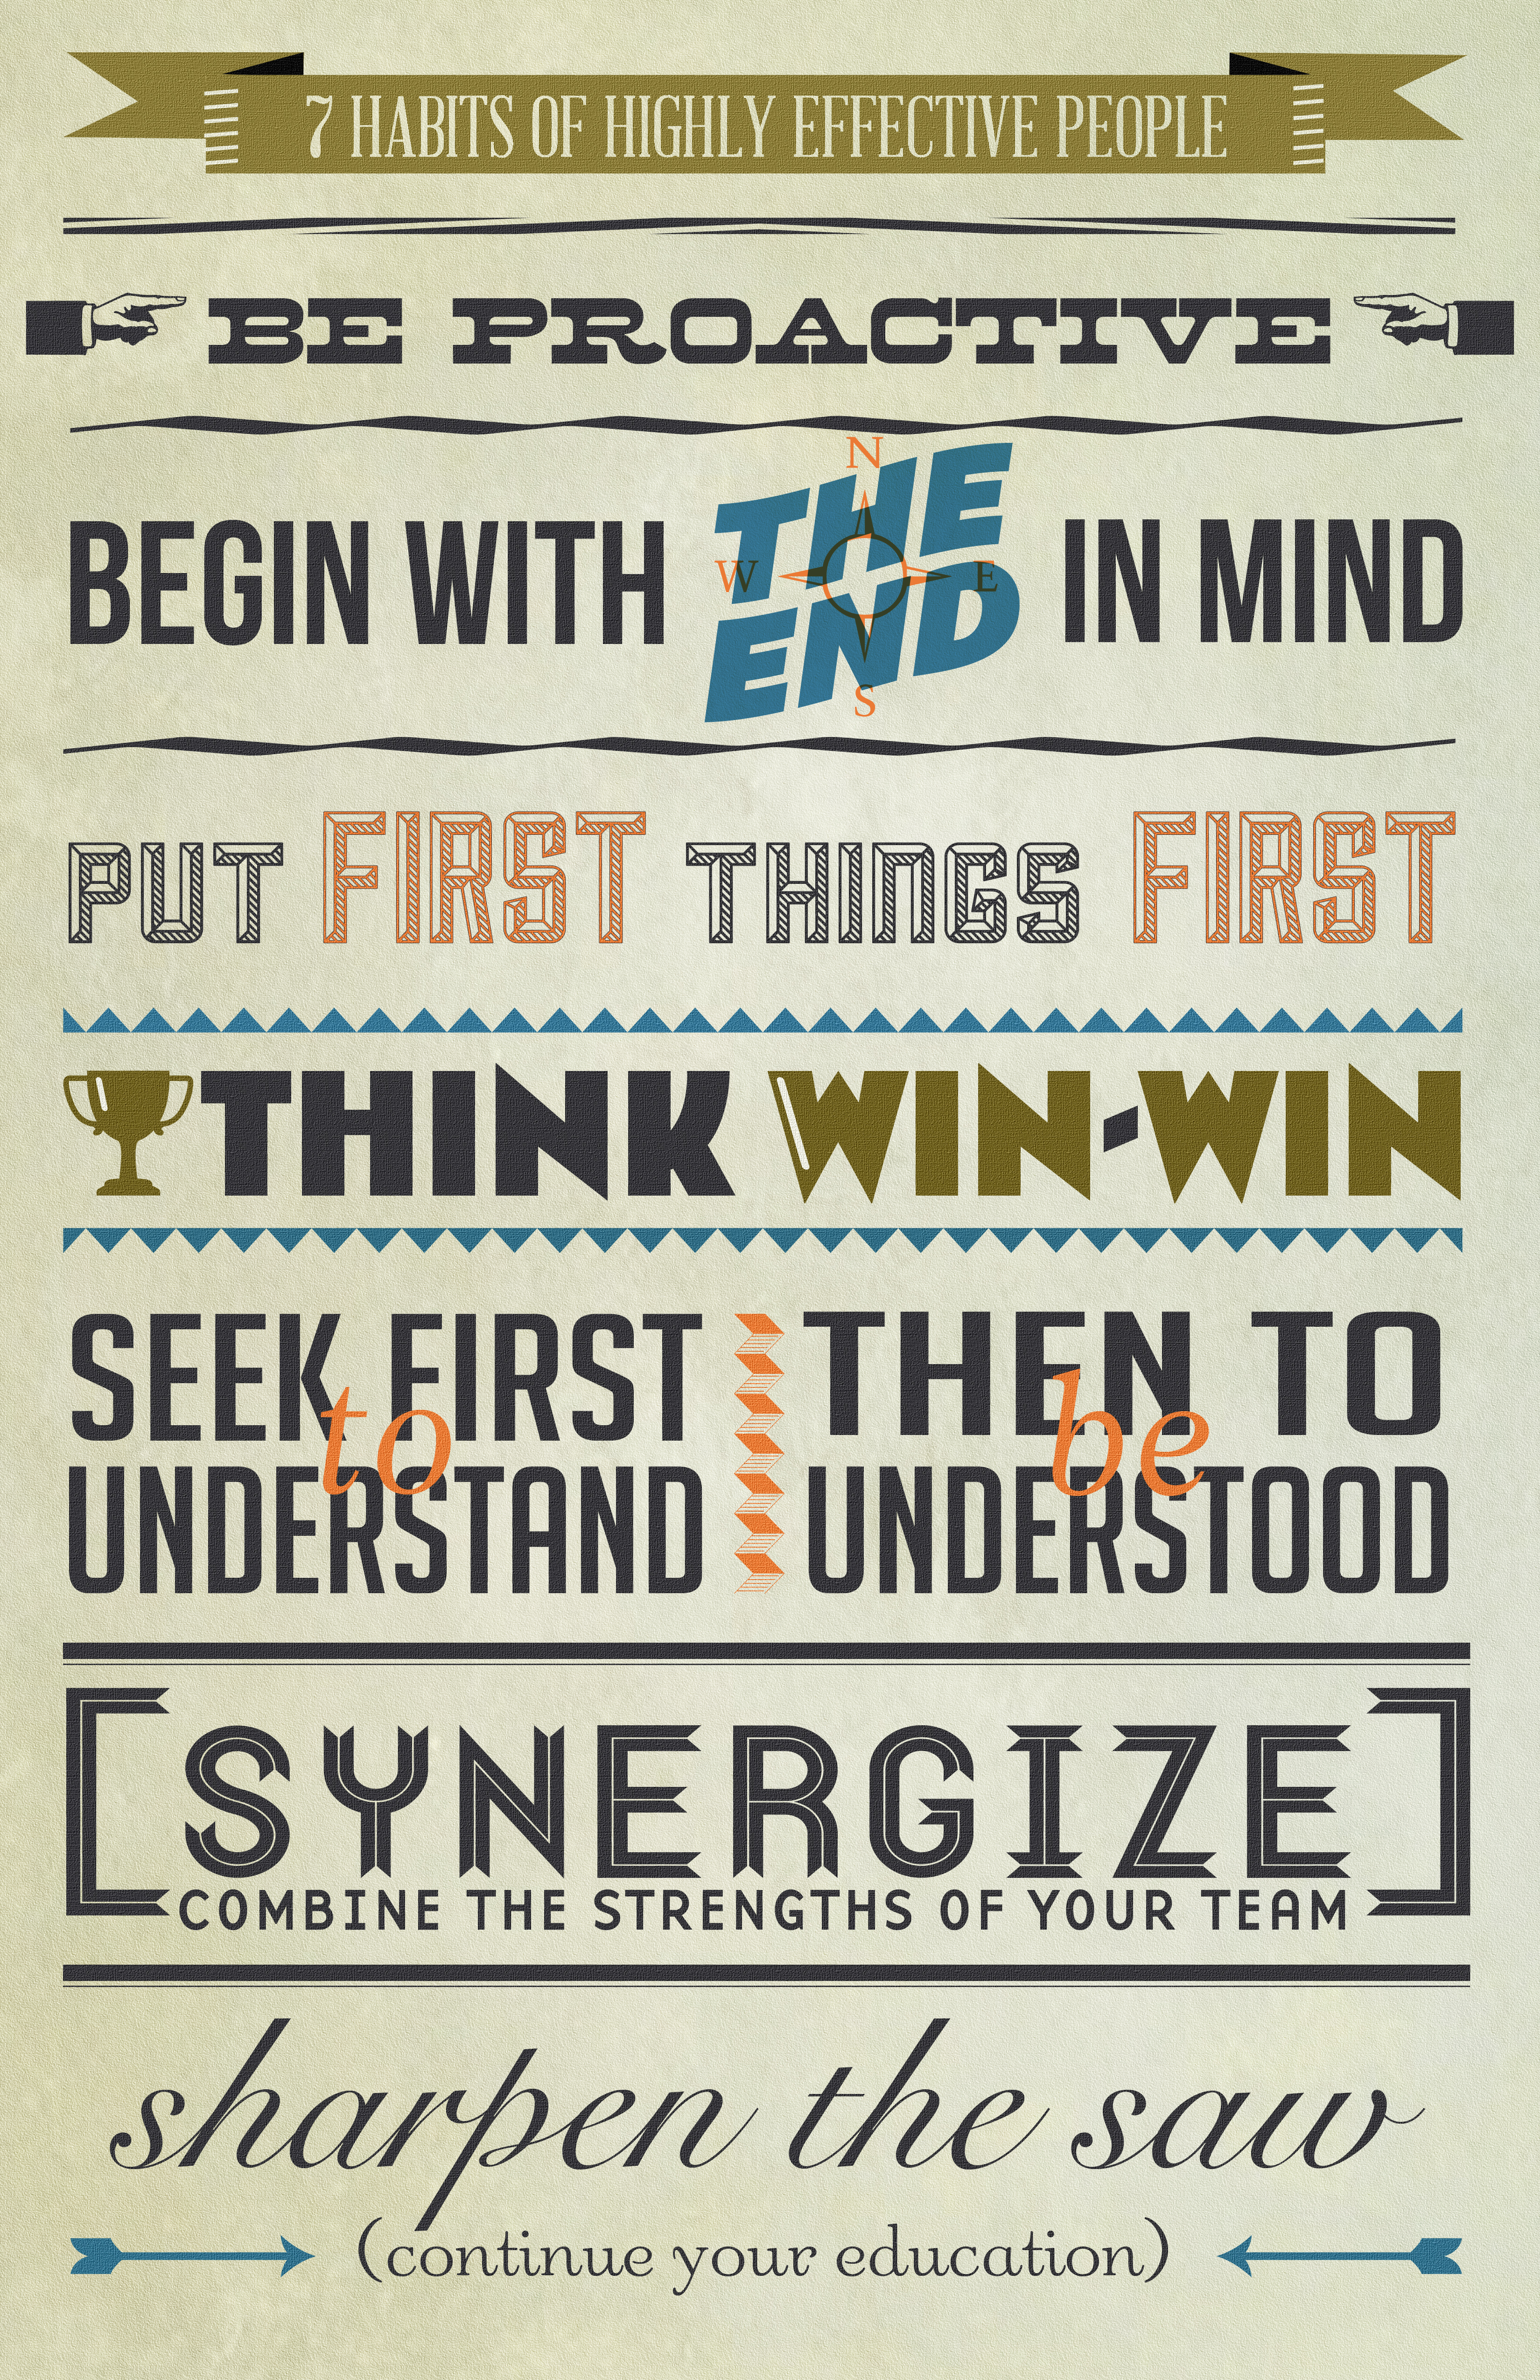 7 Habits Of Highly Effective People Typographic Poster Jake Huhn